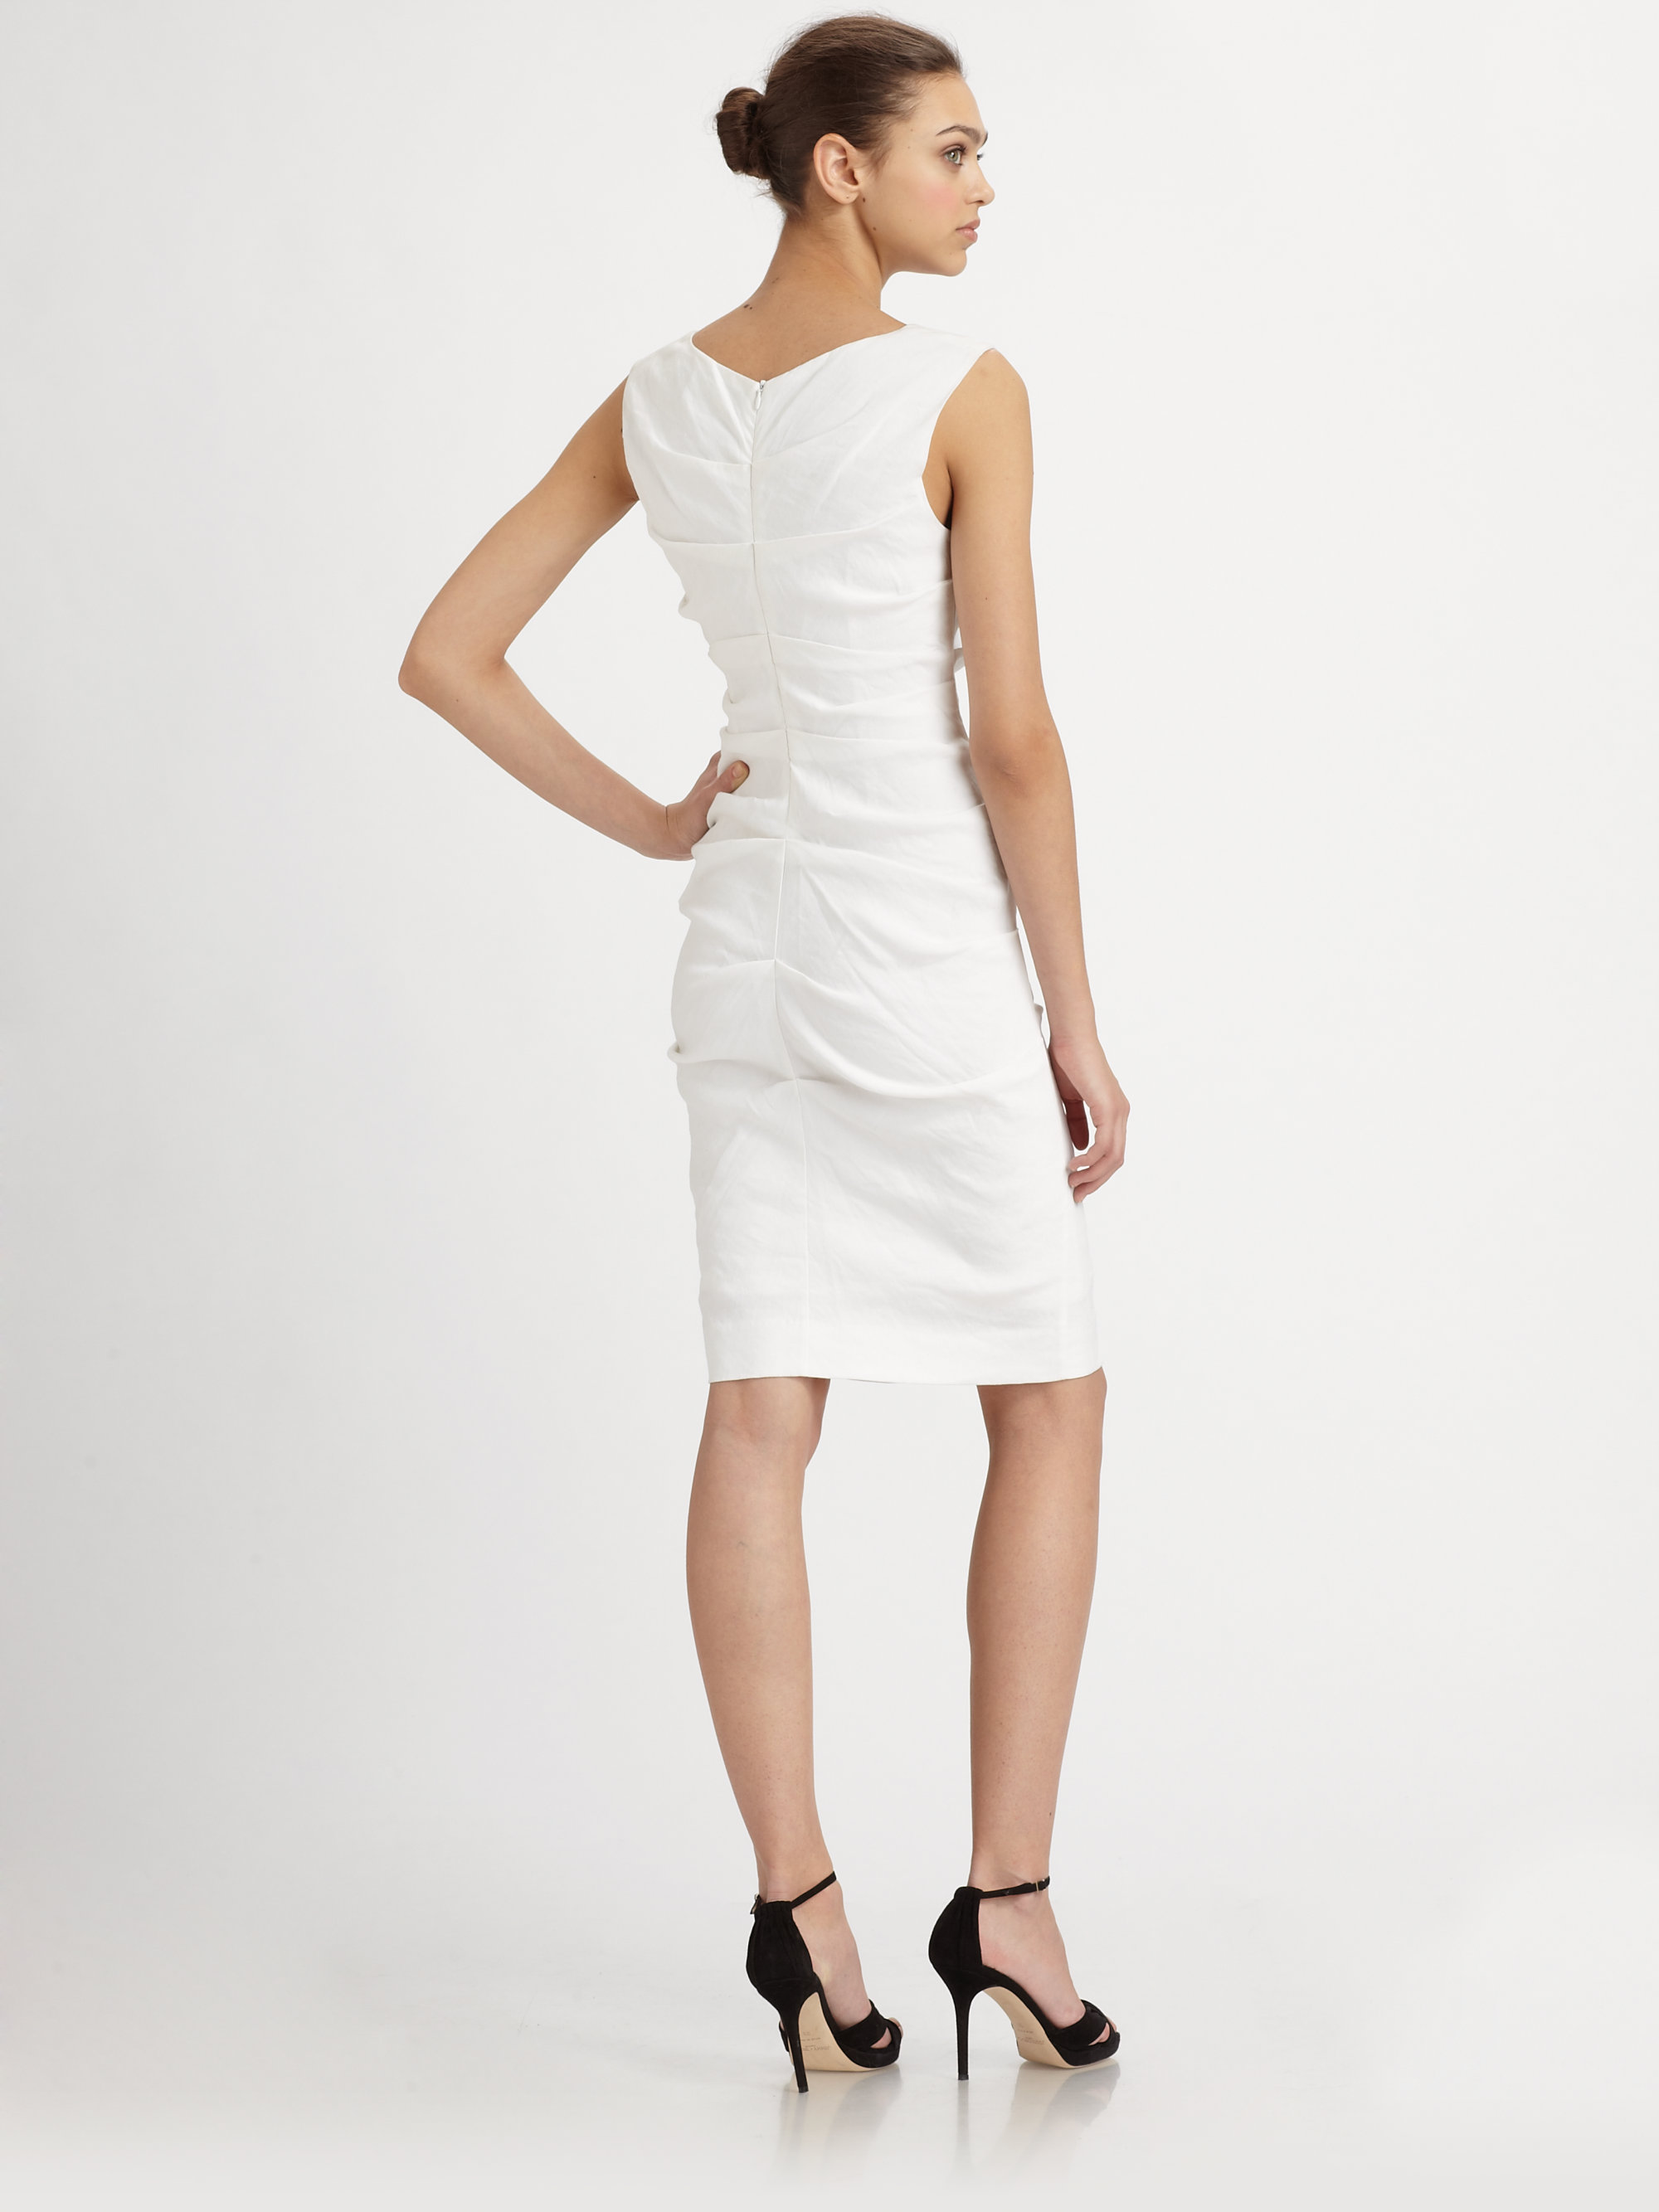 Nicole miller Stretch Linen Tuck Dress in White  Lyst